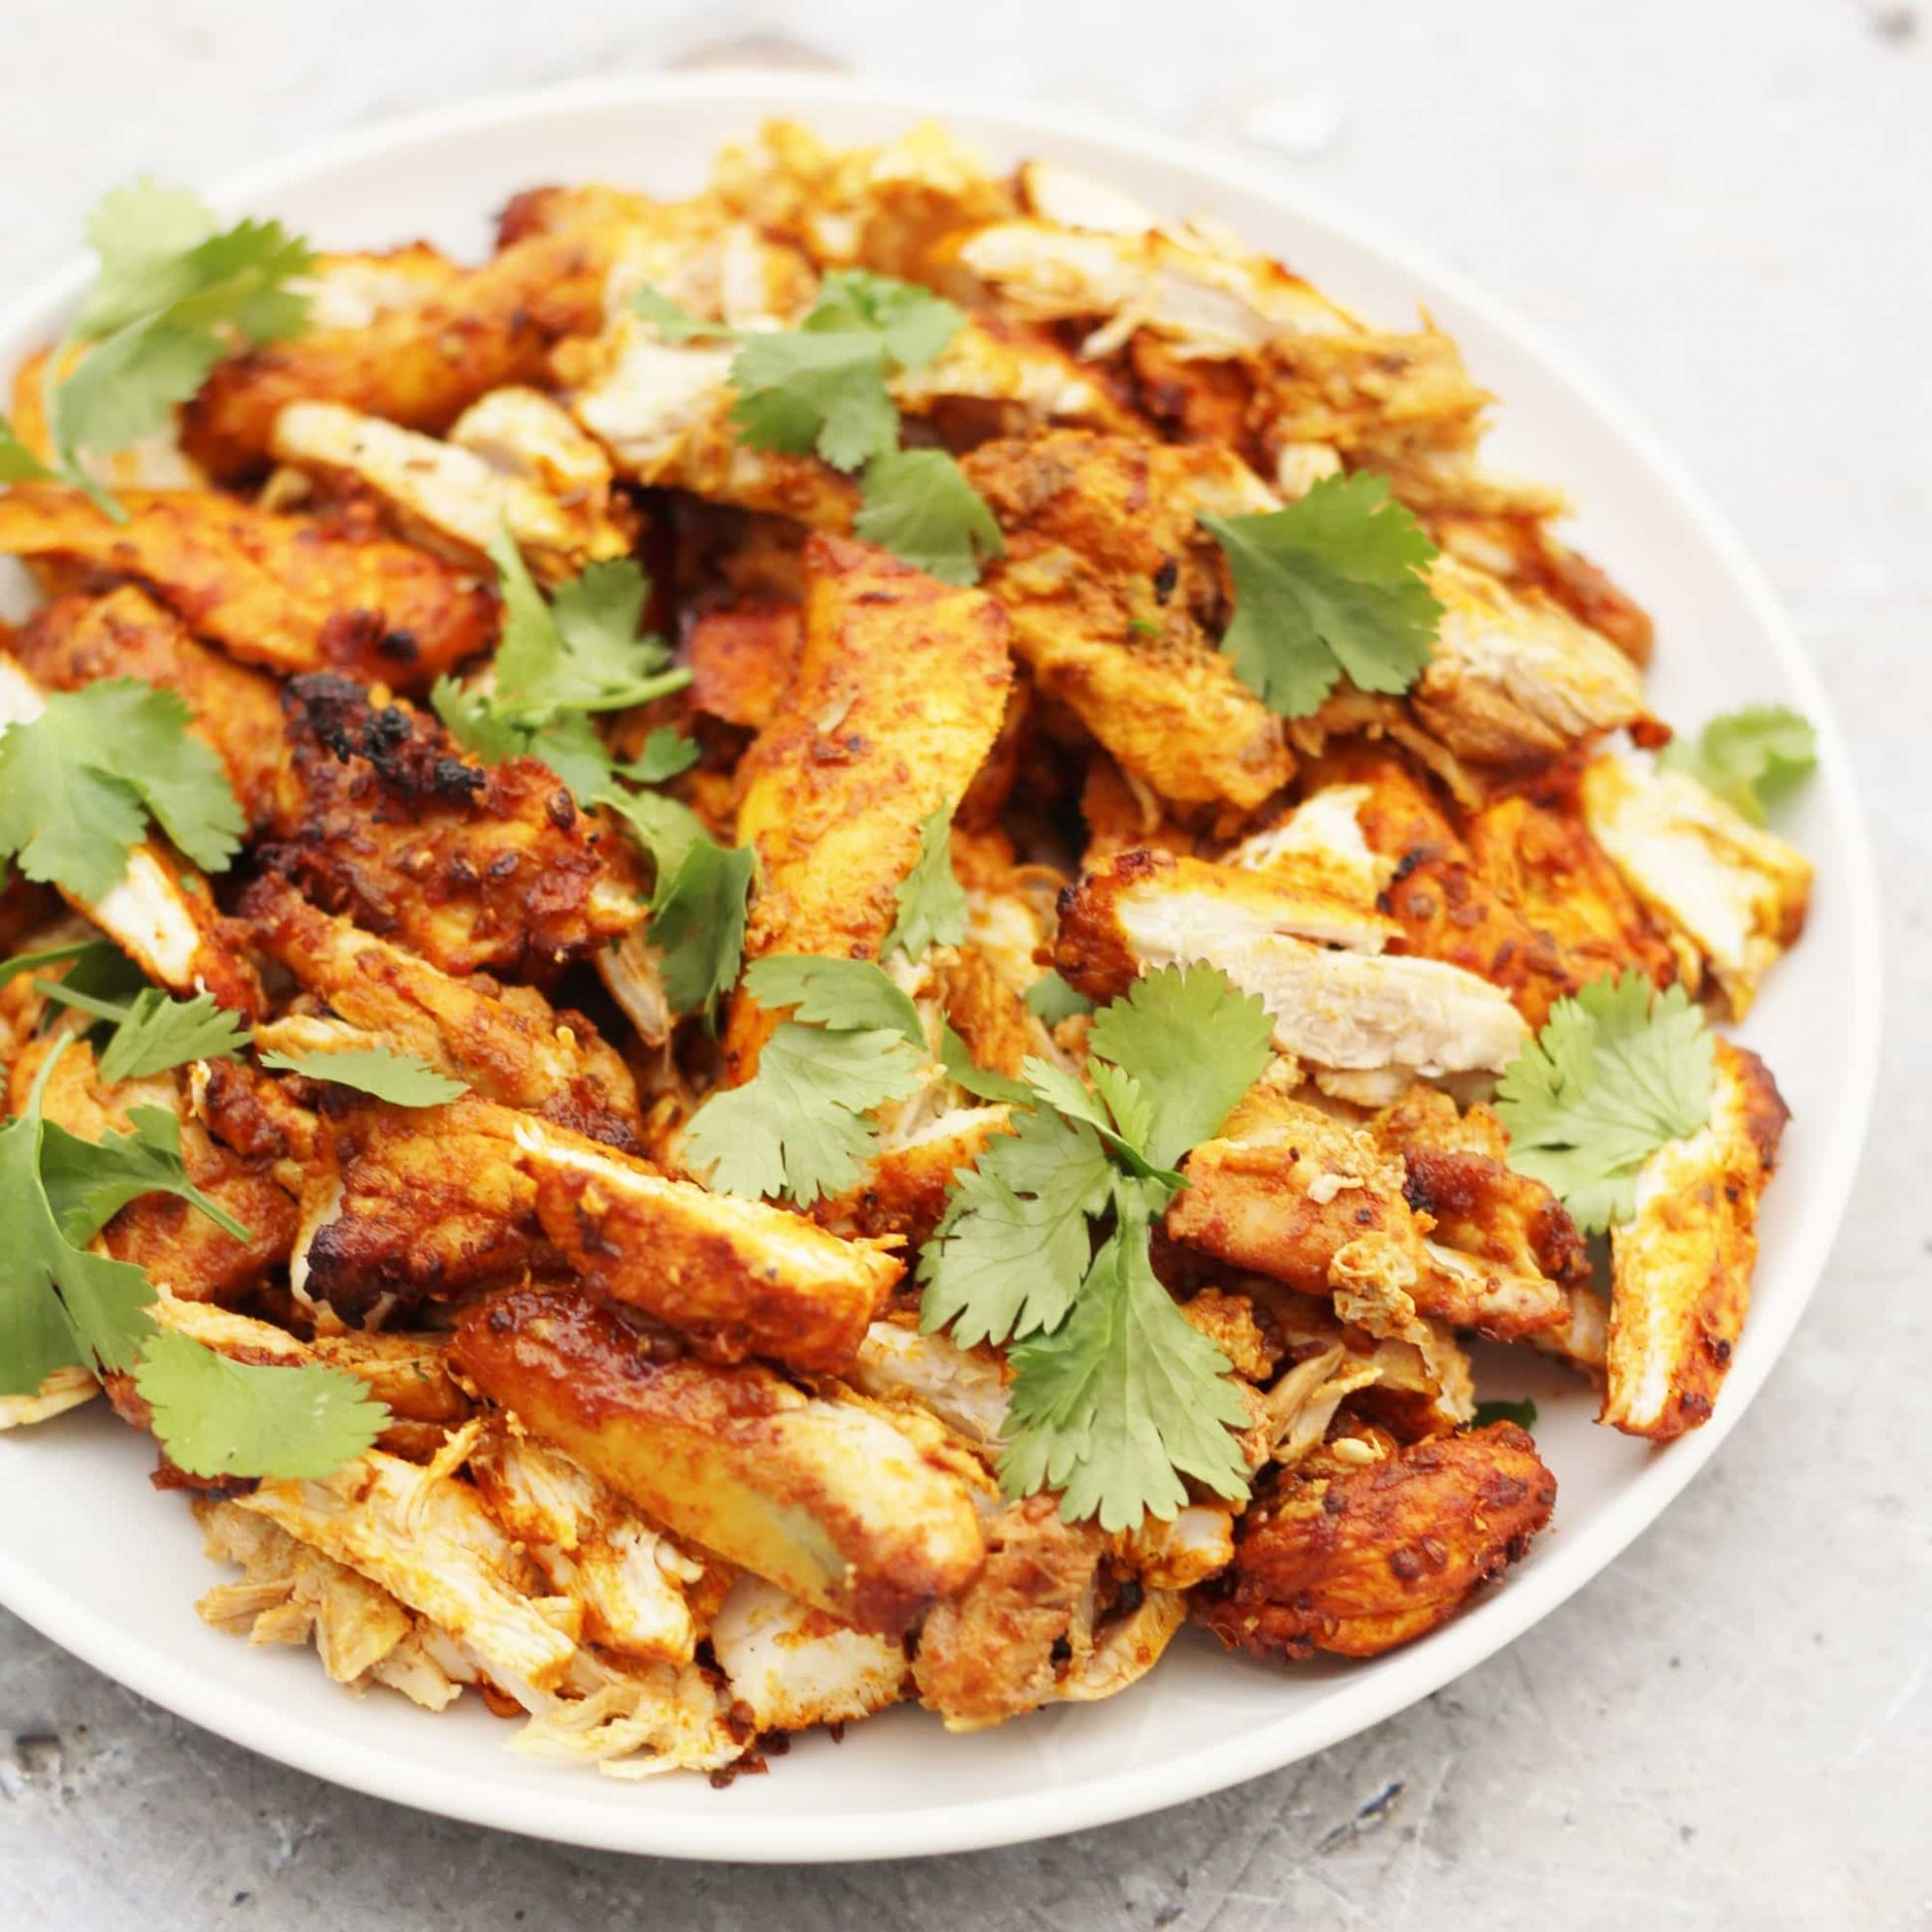 Oven Baked Chicken Shawarma with Garlic Sauce - Recipes Chicken Mini Fillets